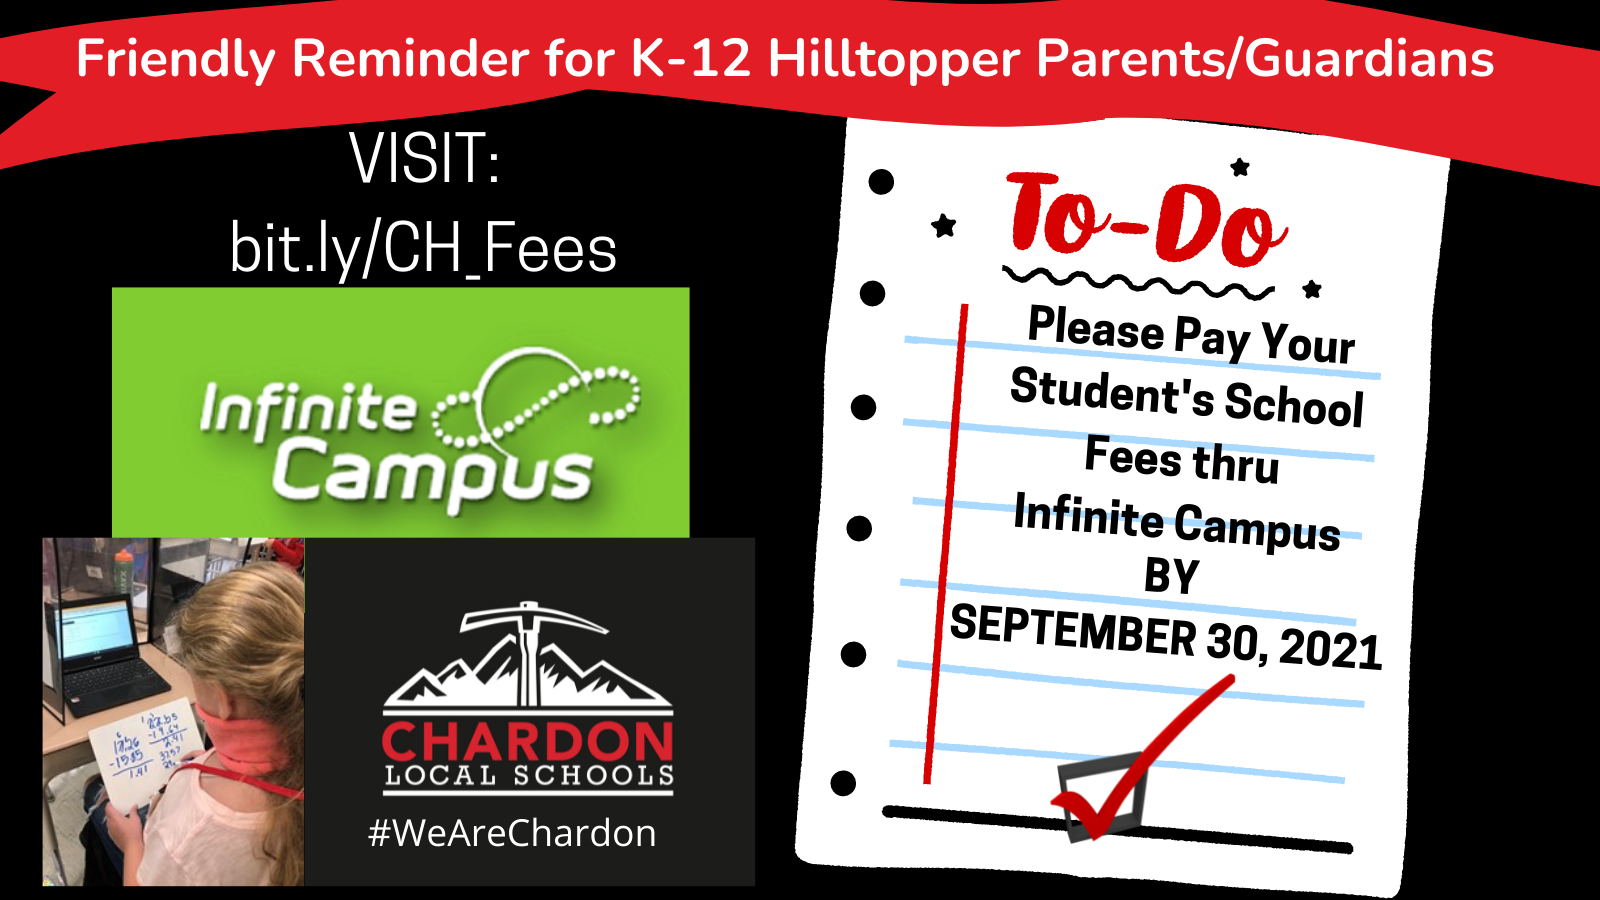 black background graphic collage; red banner at top with:  Friendly Reminder for K-12 Hilltopper Parents/Guardians; graphic of notebook paper:  To-Do:  Please Pay Your Student's School Fees thru Infinite Campus; image of checkmark; Infinite Campus logo; Chardon Local Schools logo with #WeAreChardon hashtag; Chardon Middle School student at classroom desk with Chromebook and a piece of paper working out a math problem